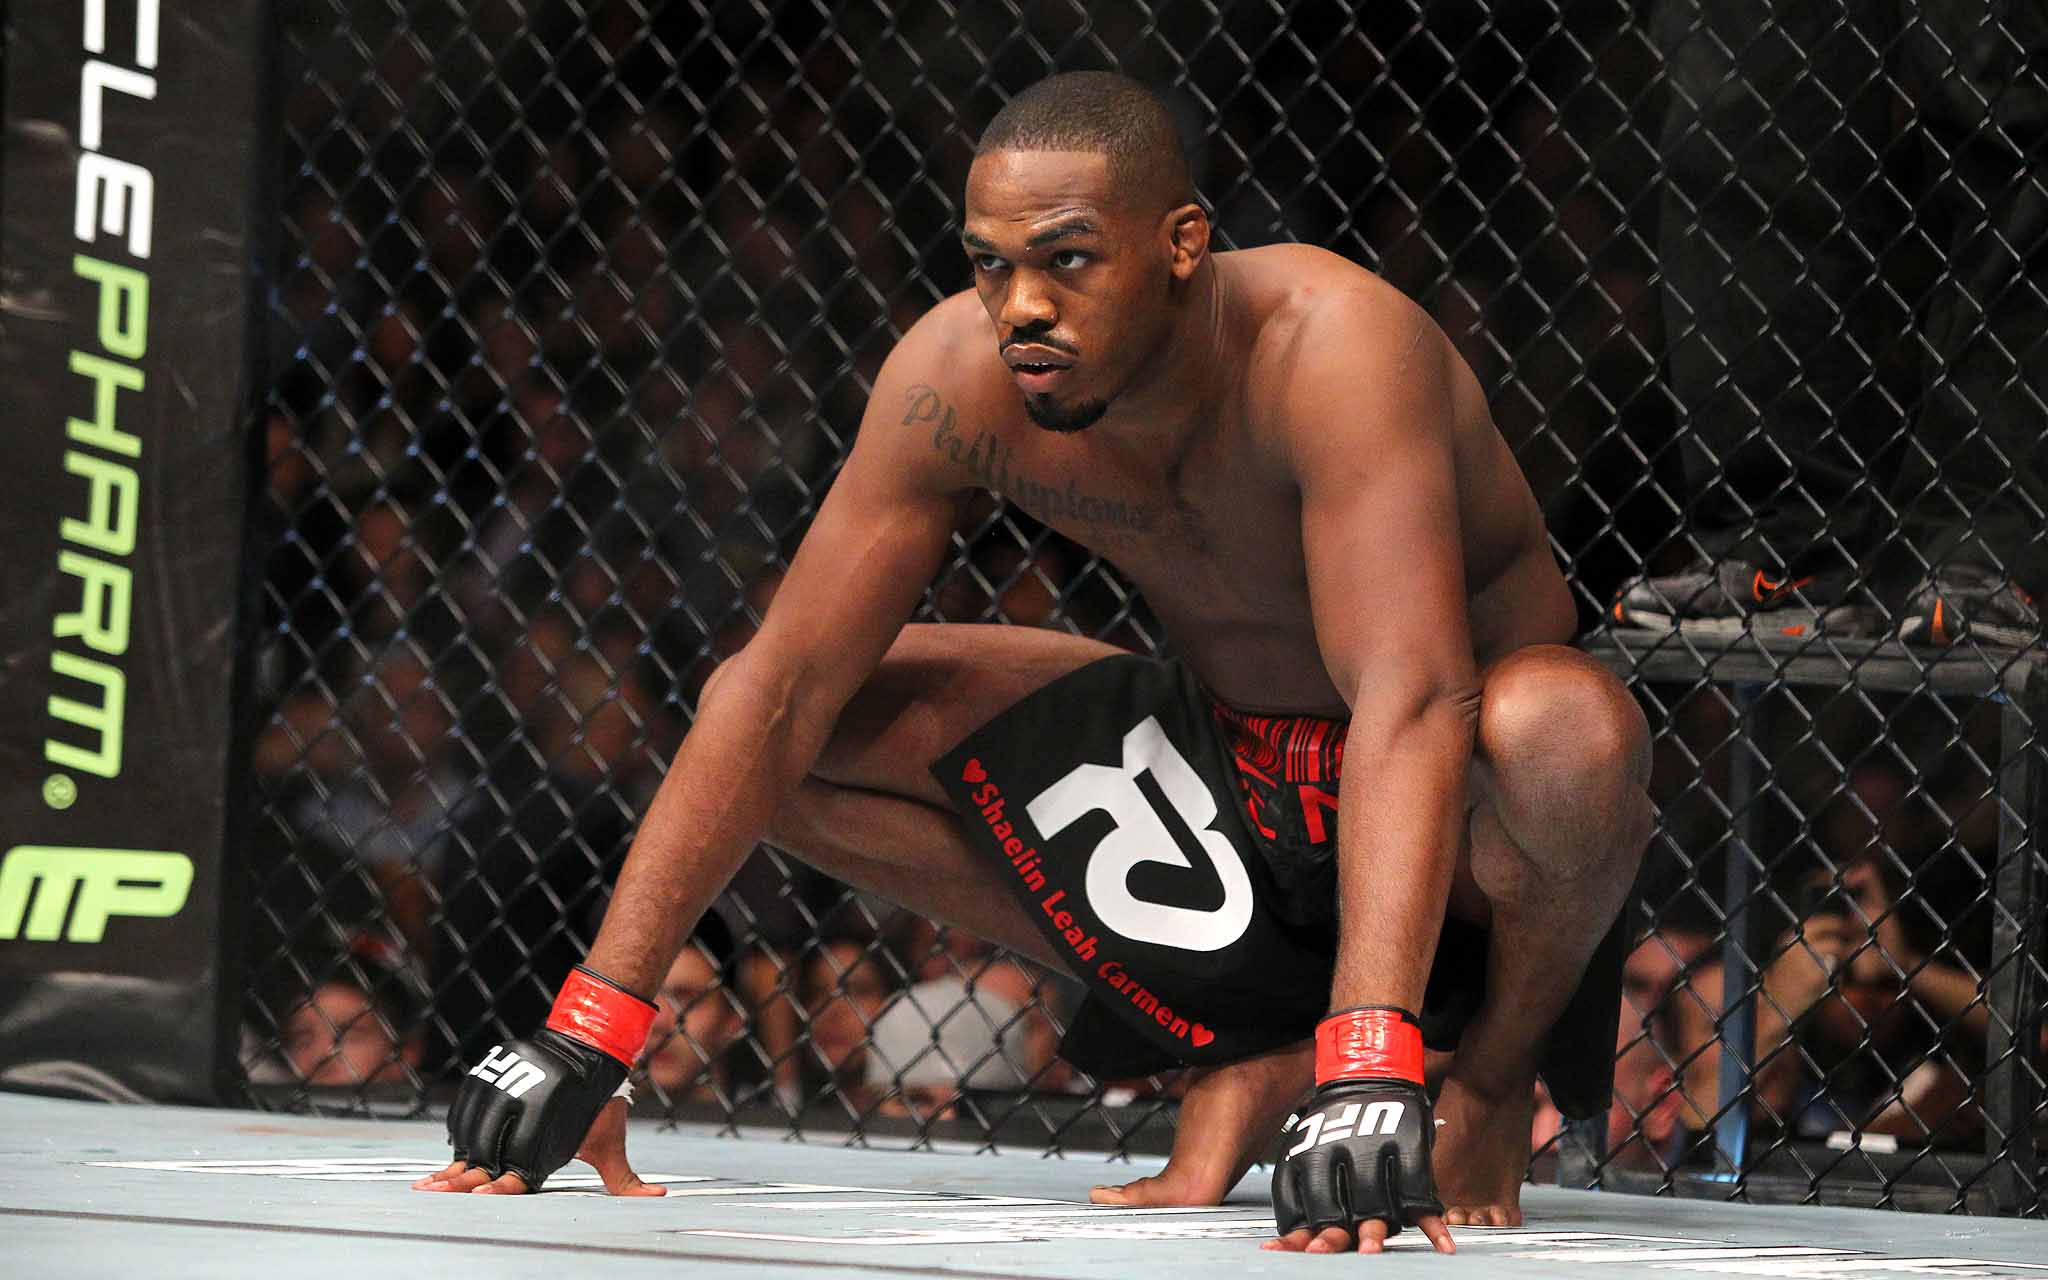 jon jones pic 2_1454889516954.jpg